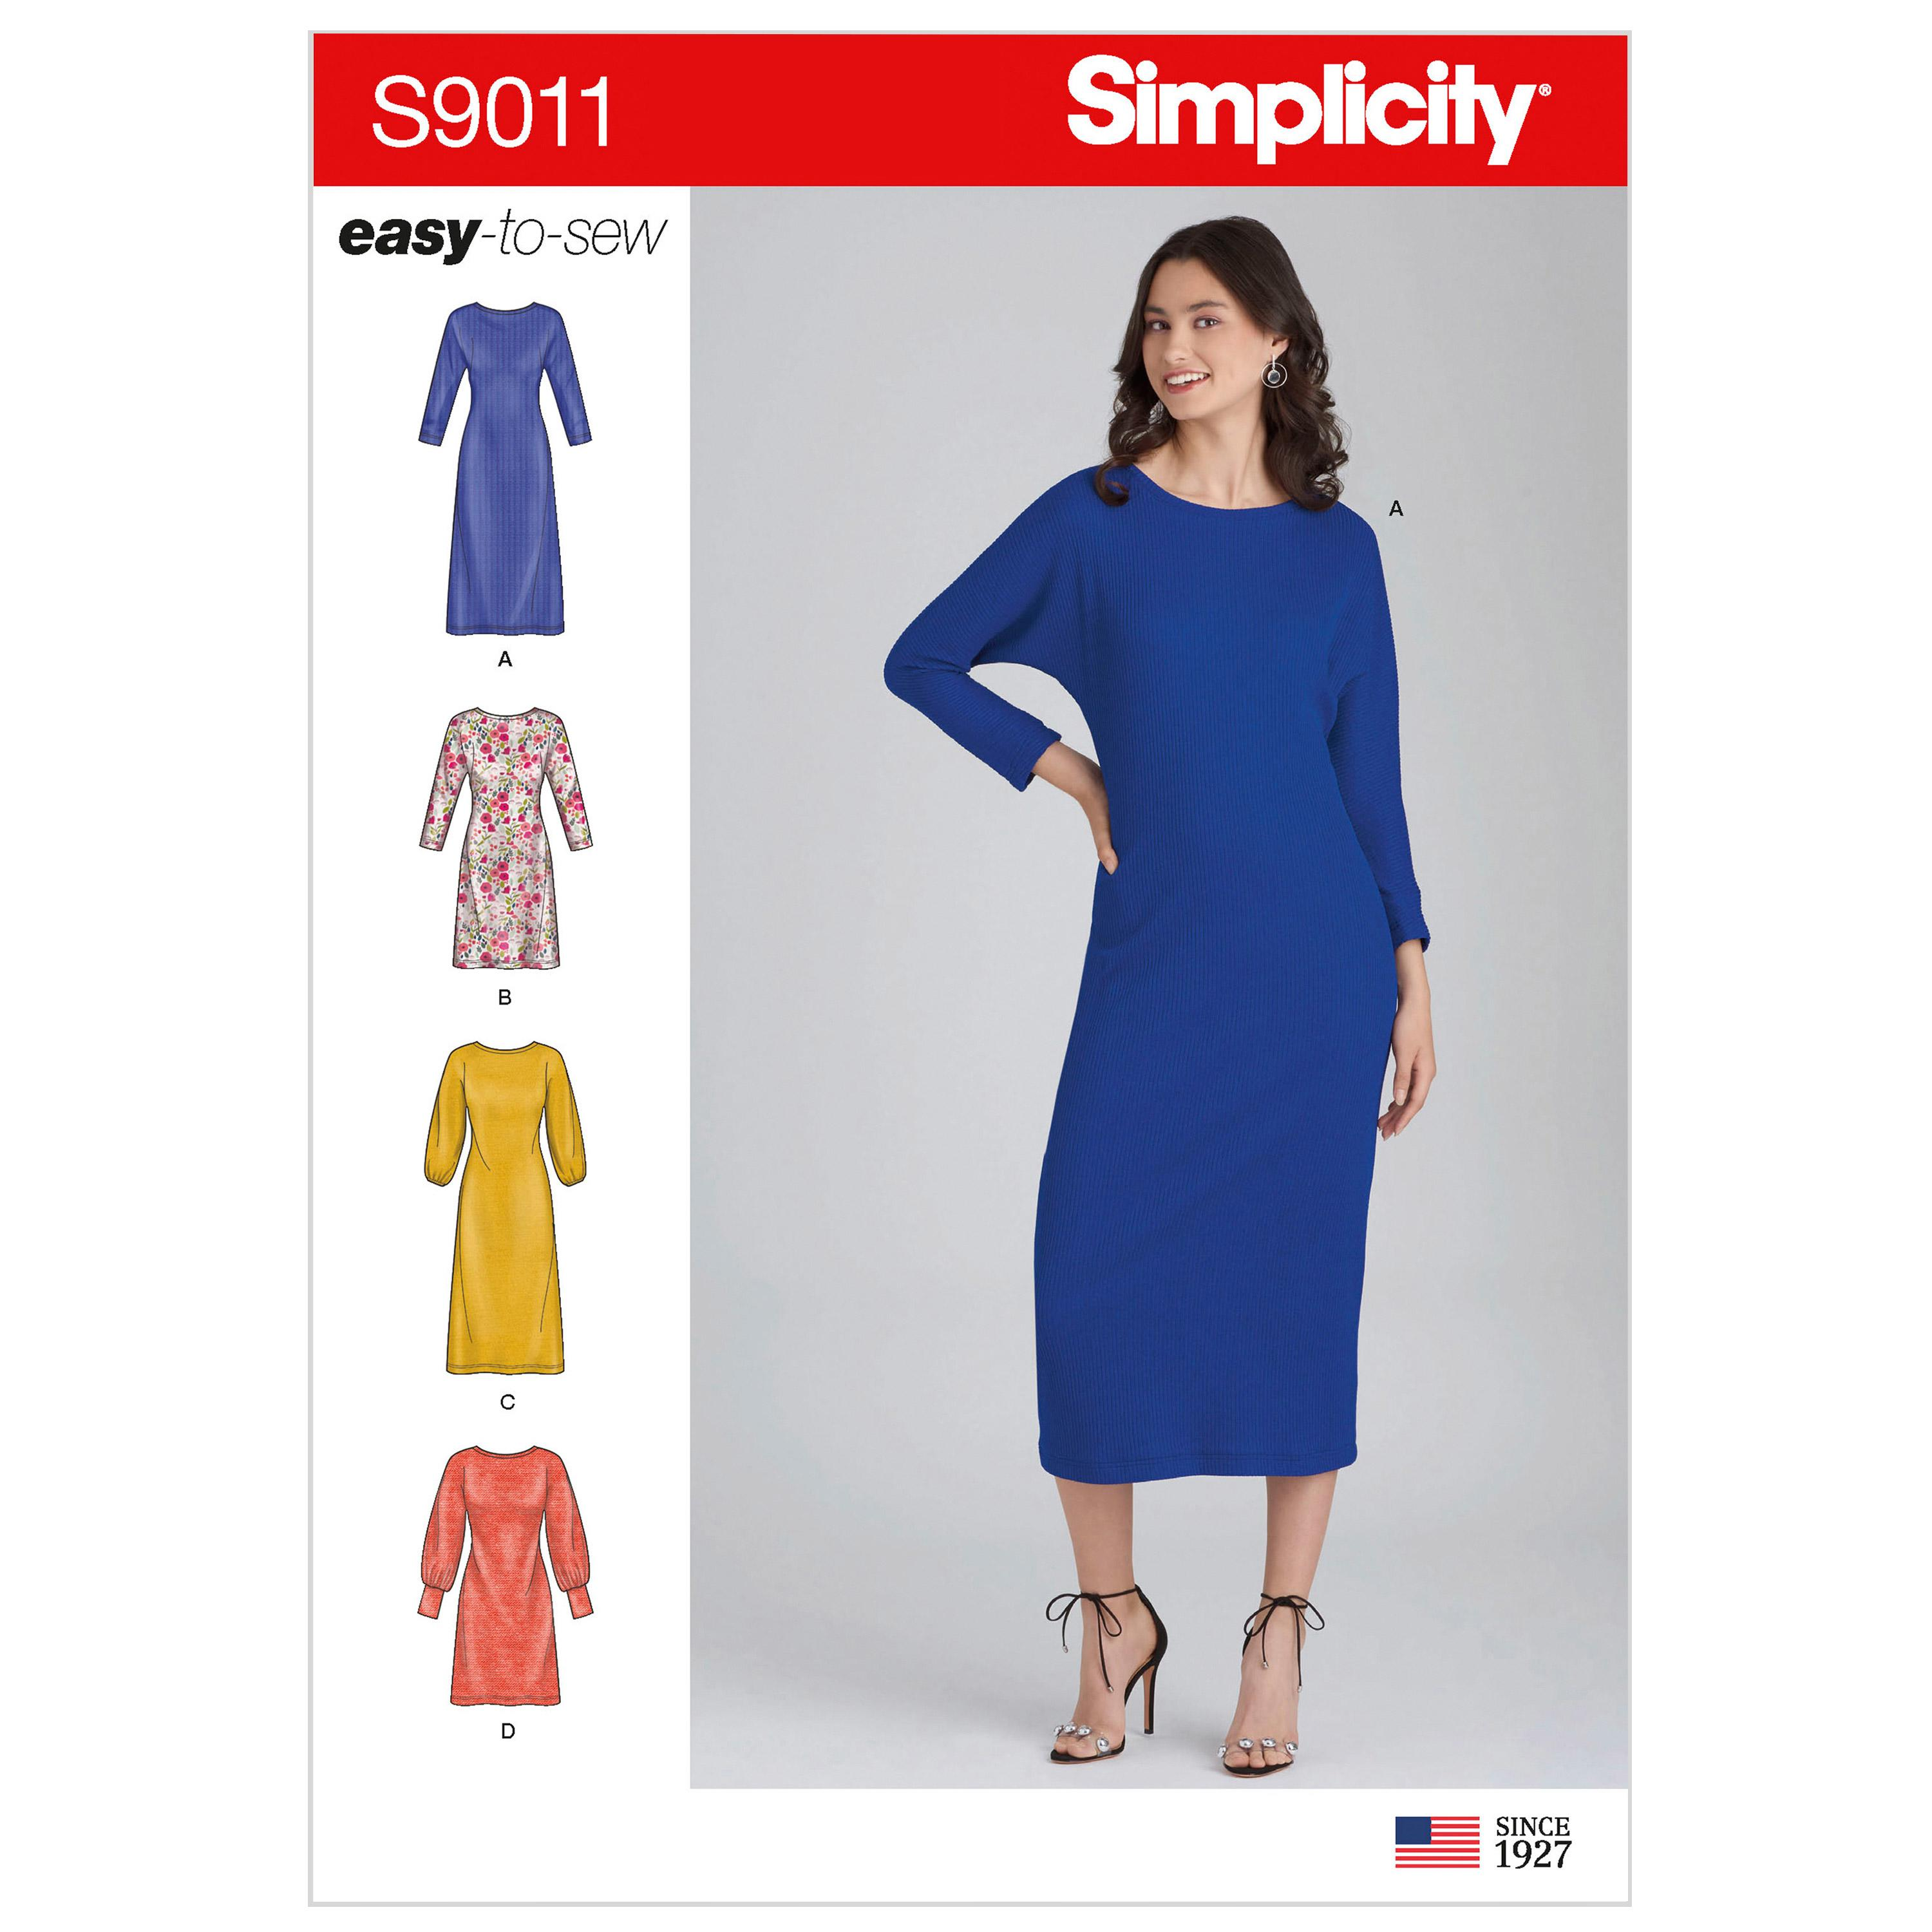 Simplicity S9011 Misses' Knit Pullover Dresses